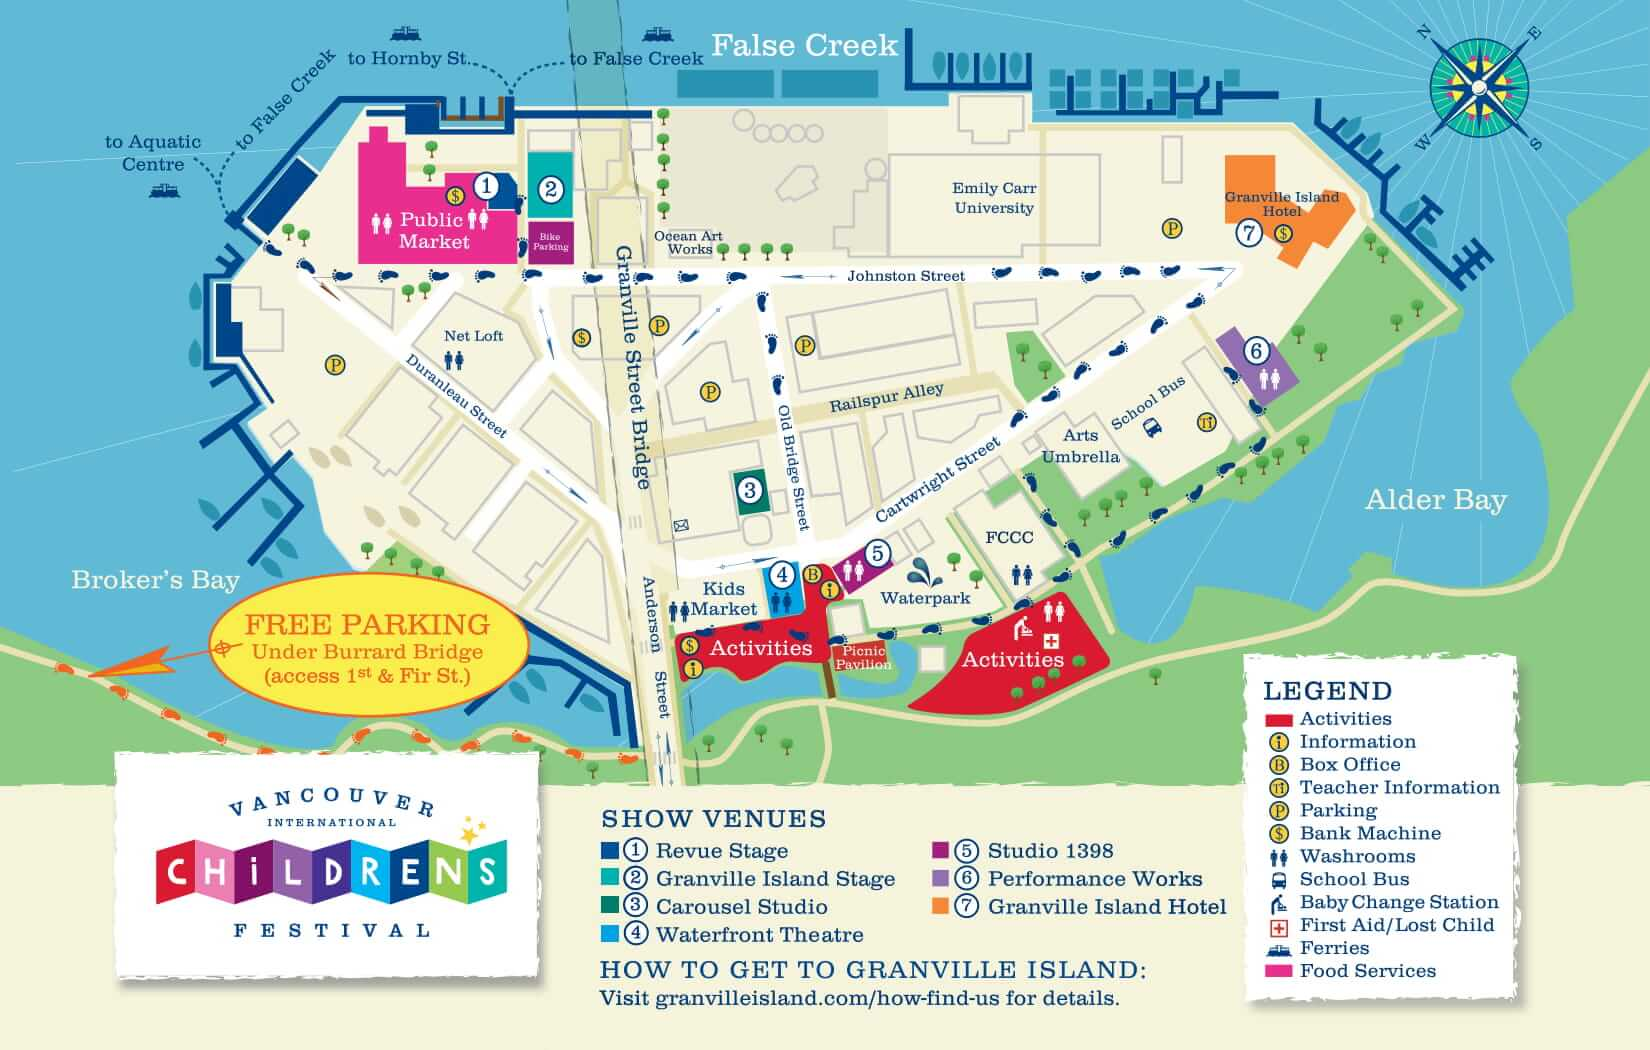 Vancouver International Children's Festival Map